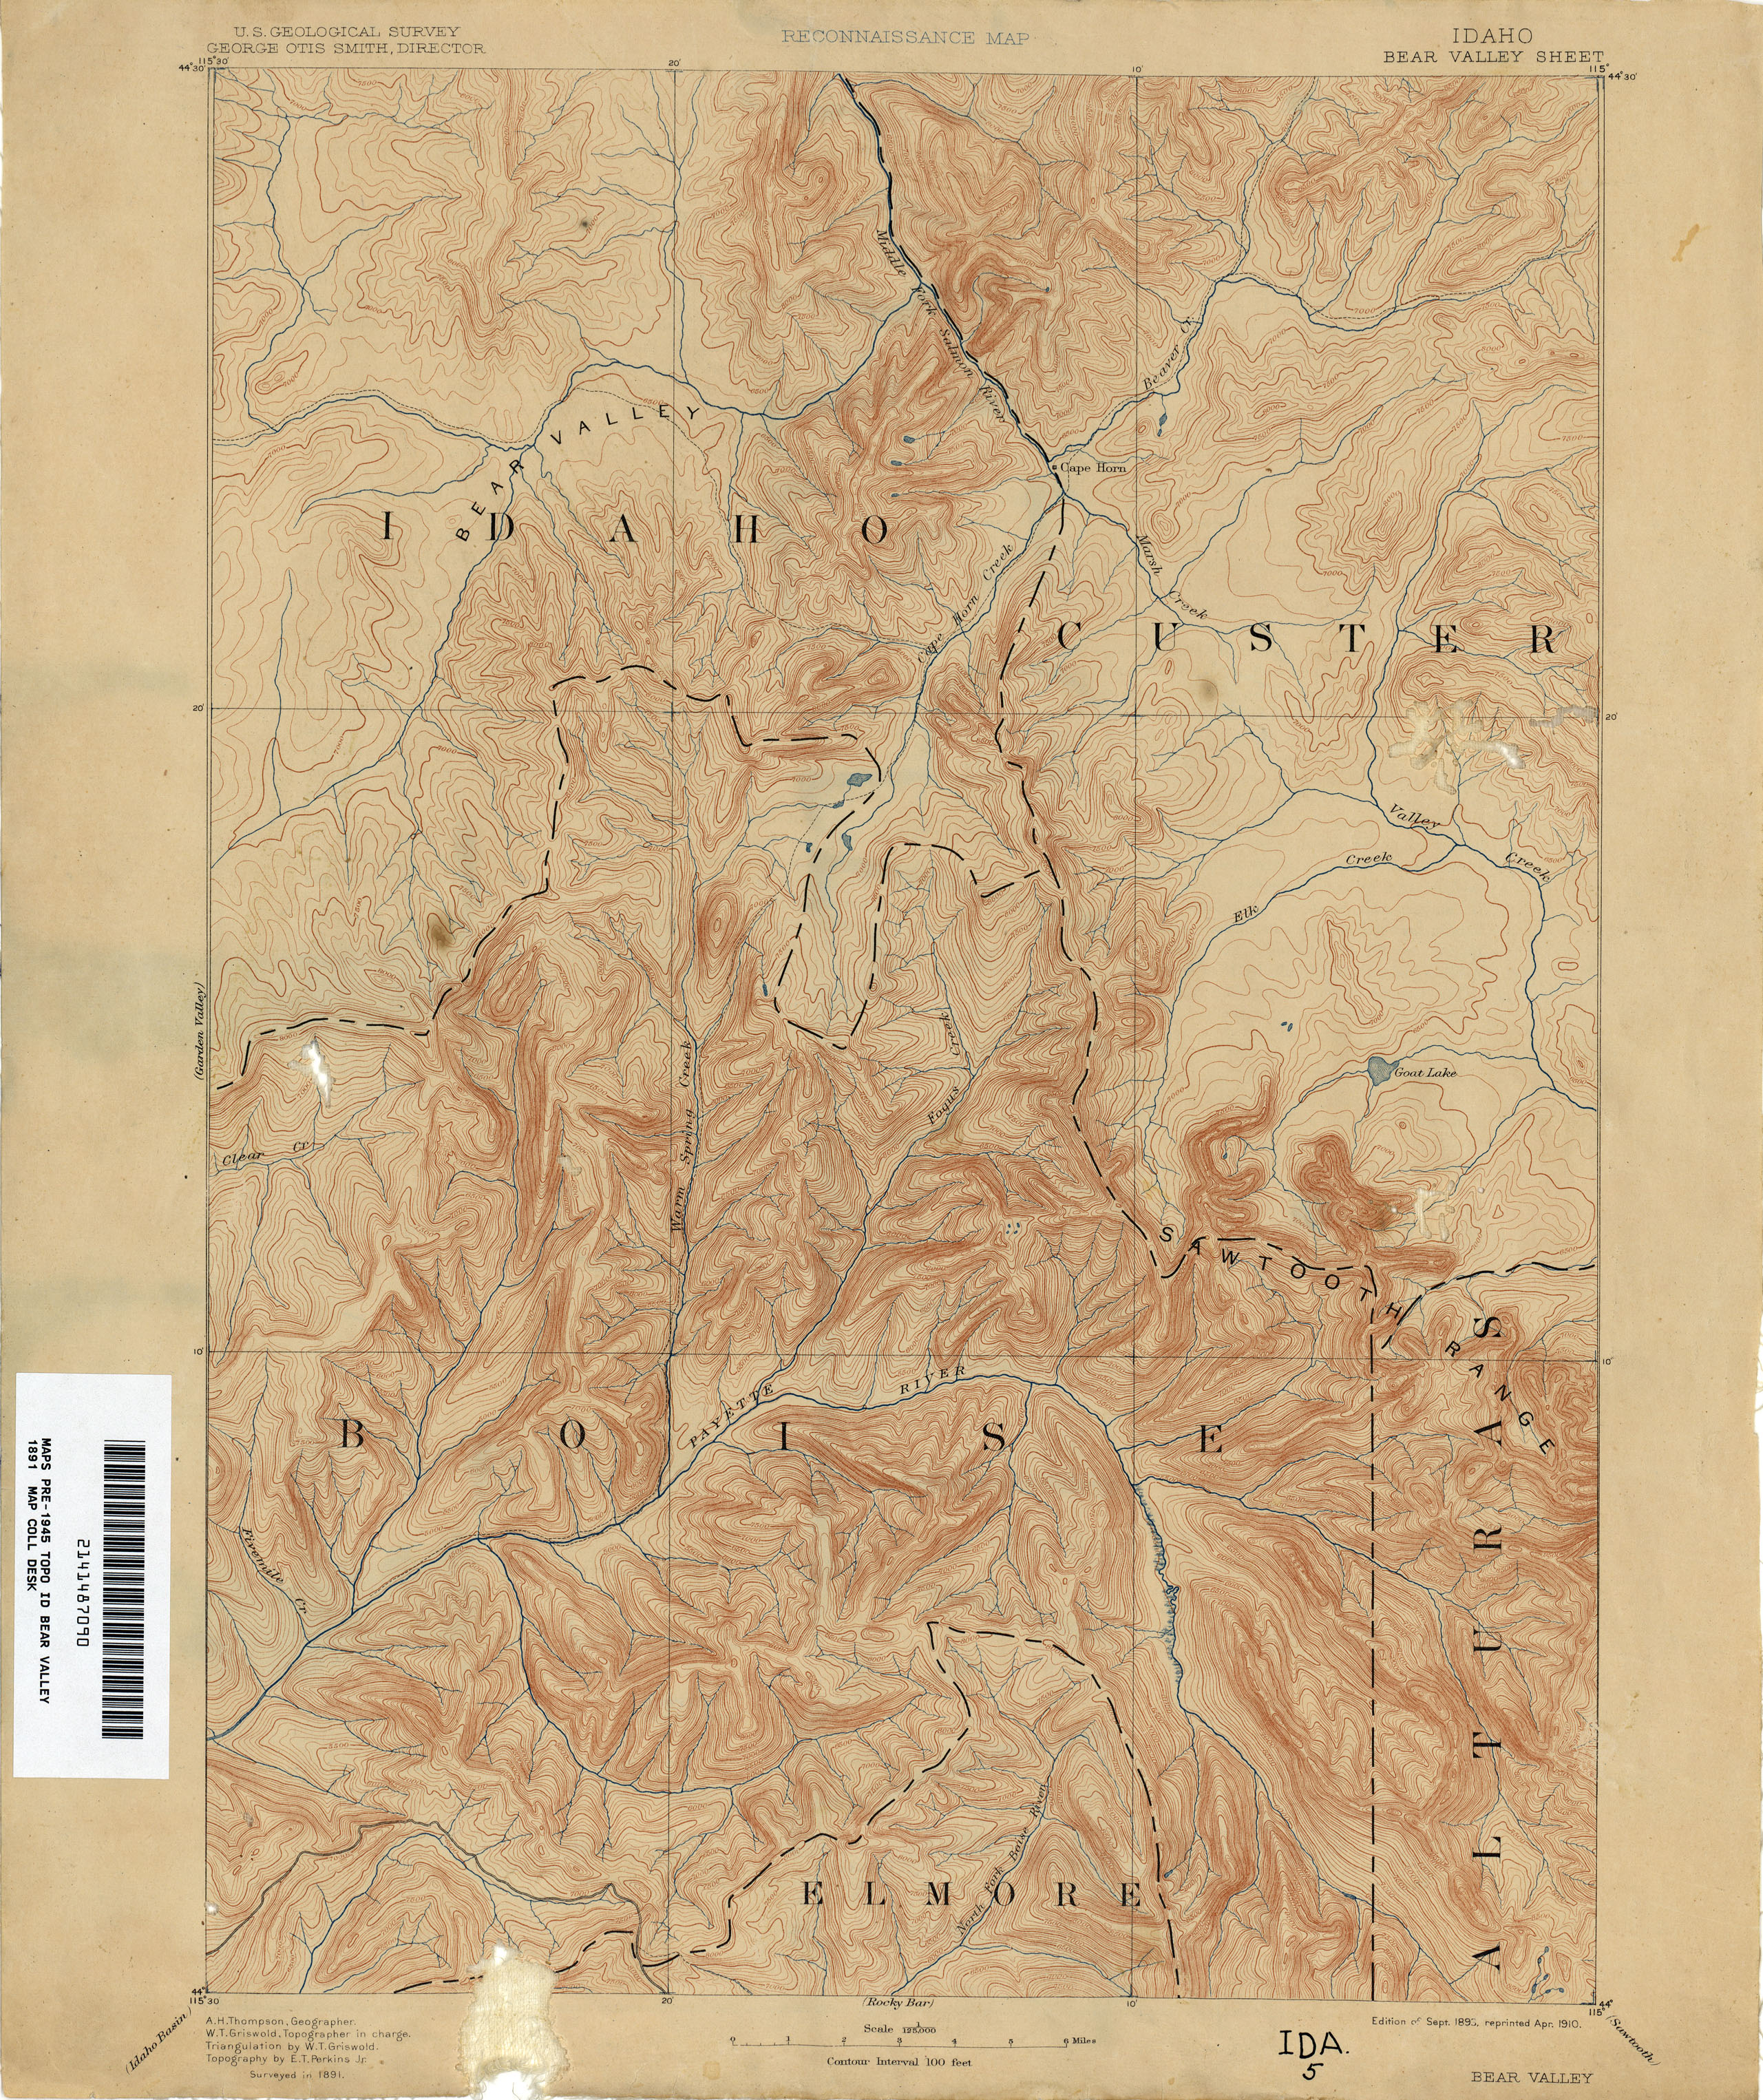 Idaho Historical Topographic Maps - Perry-Castañeda Map ...